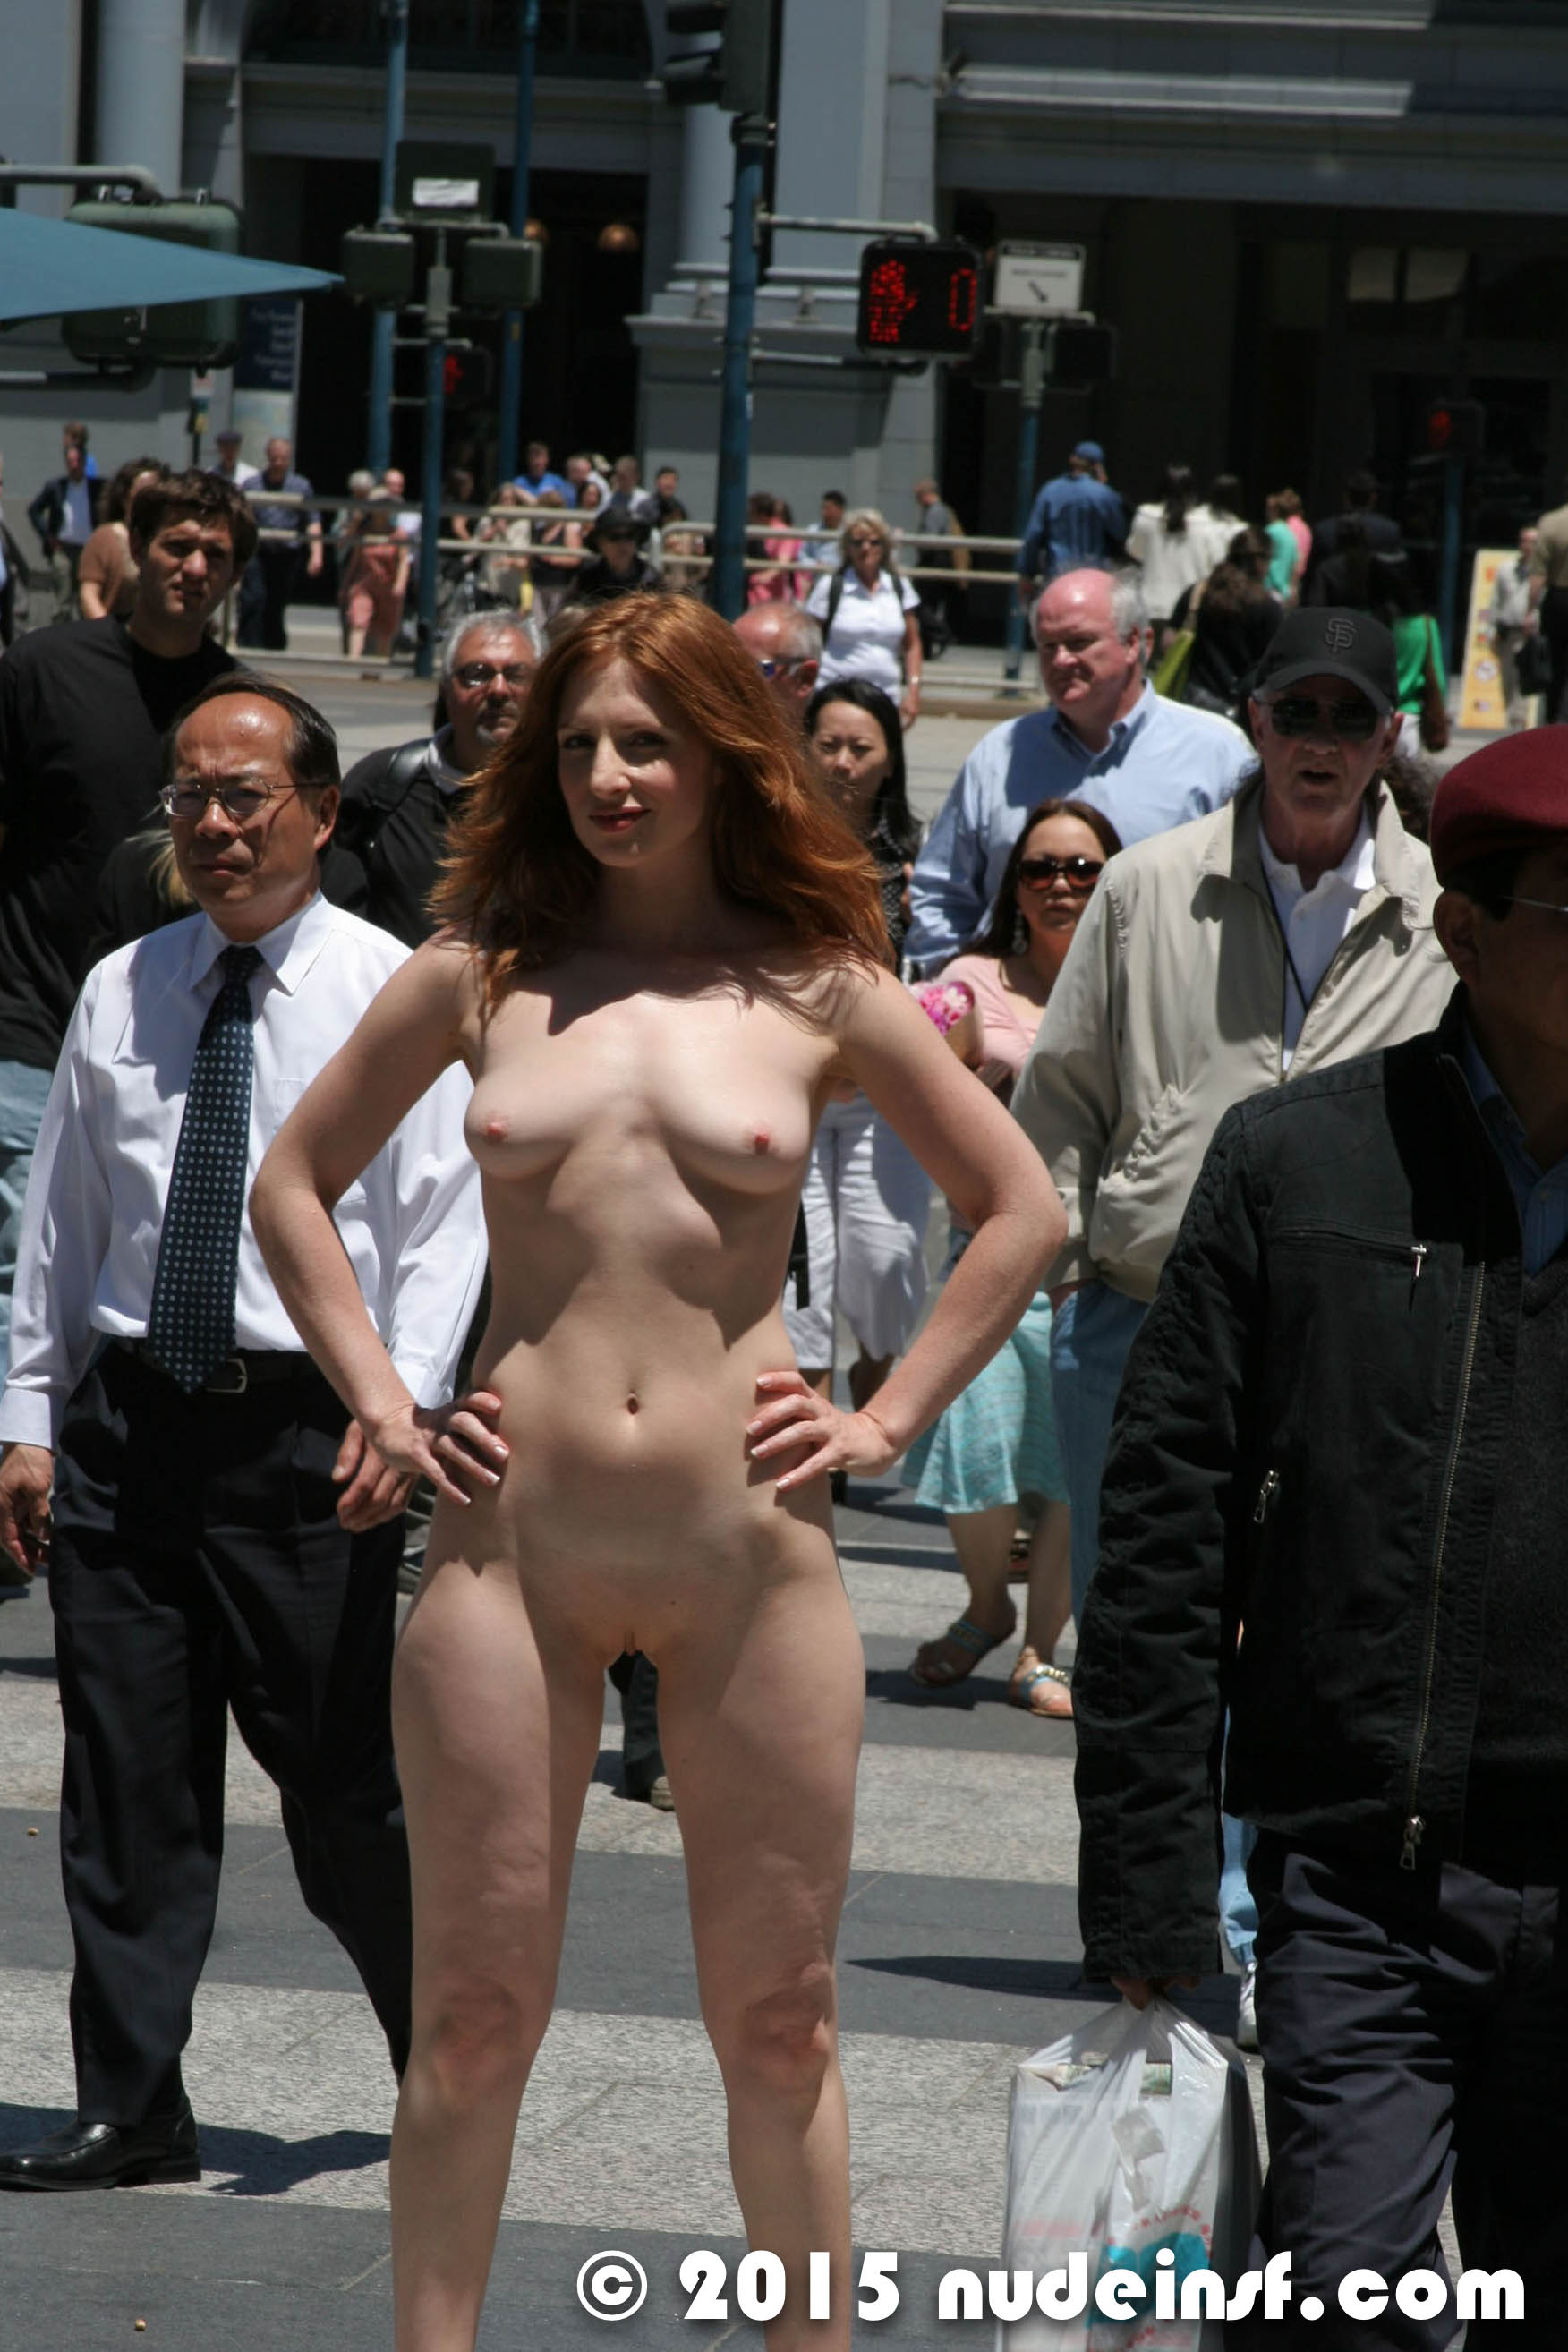 The characters of public nude